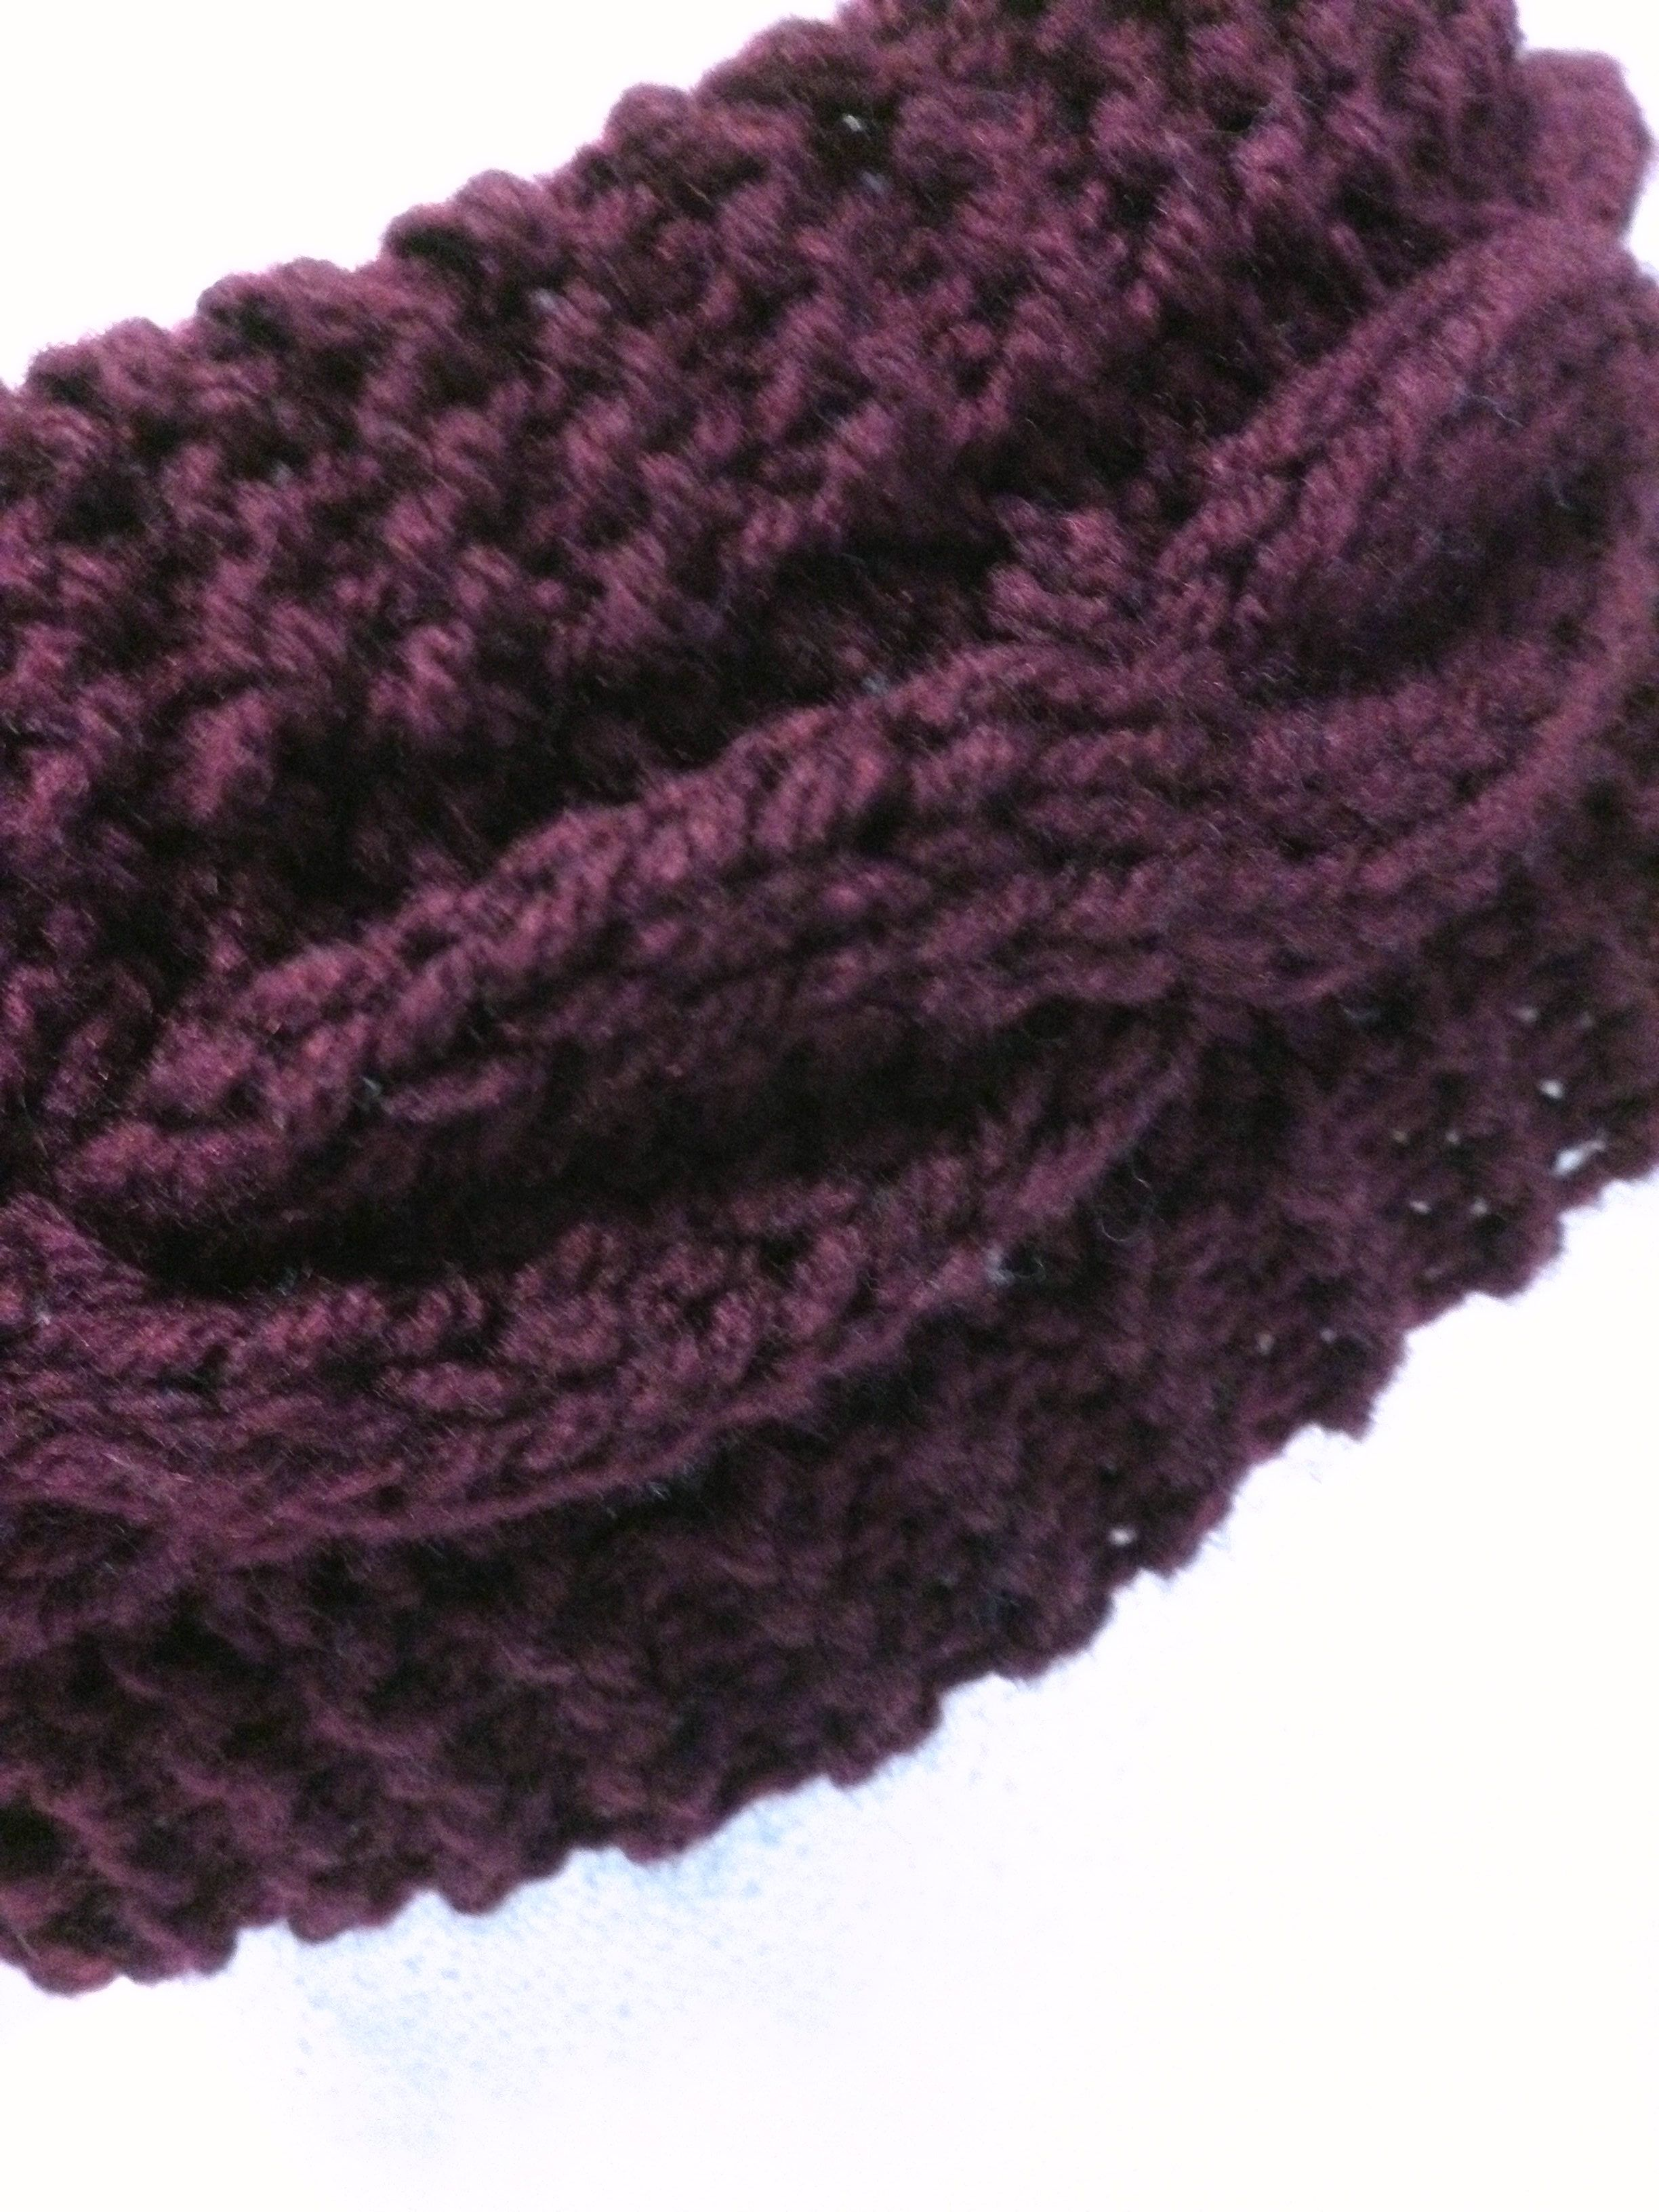 Knit Cabled Ear warmer Pattern , Knit Braided Headband Pattern Wide ...